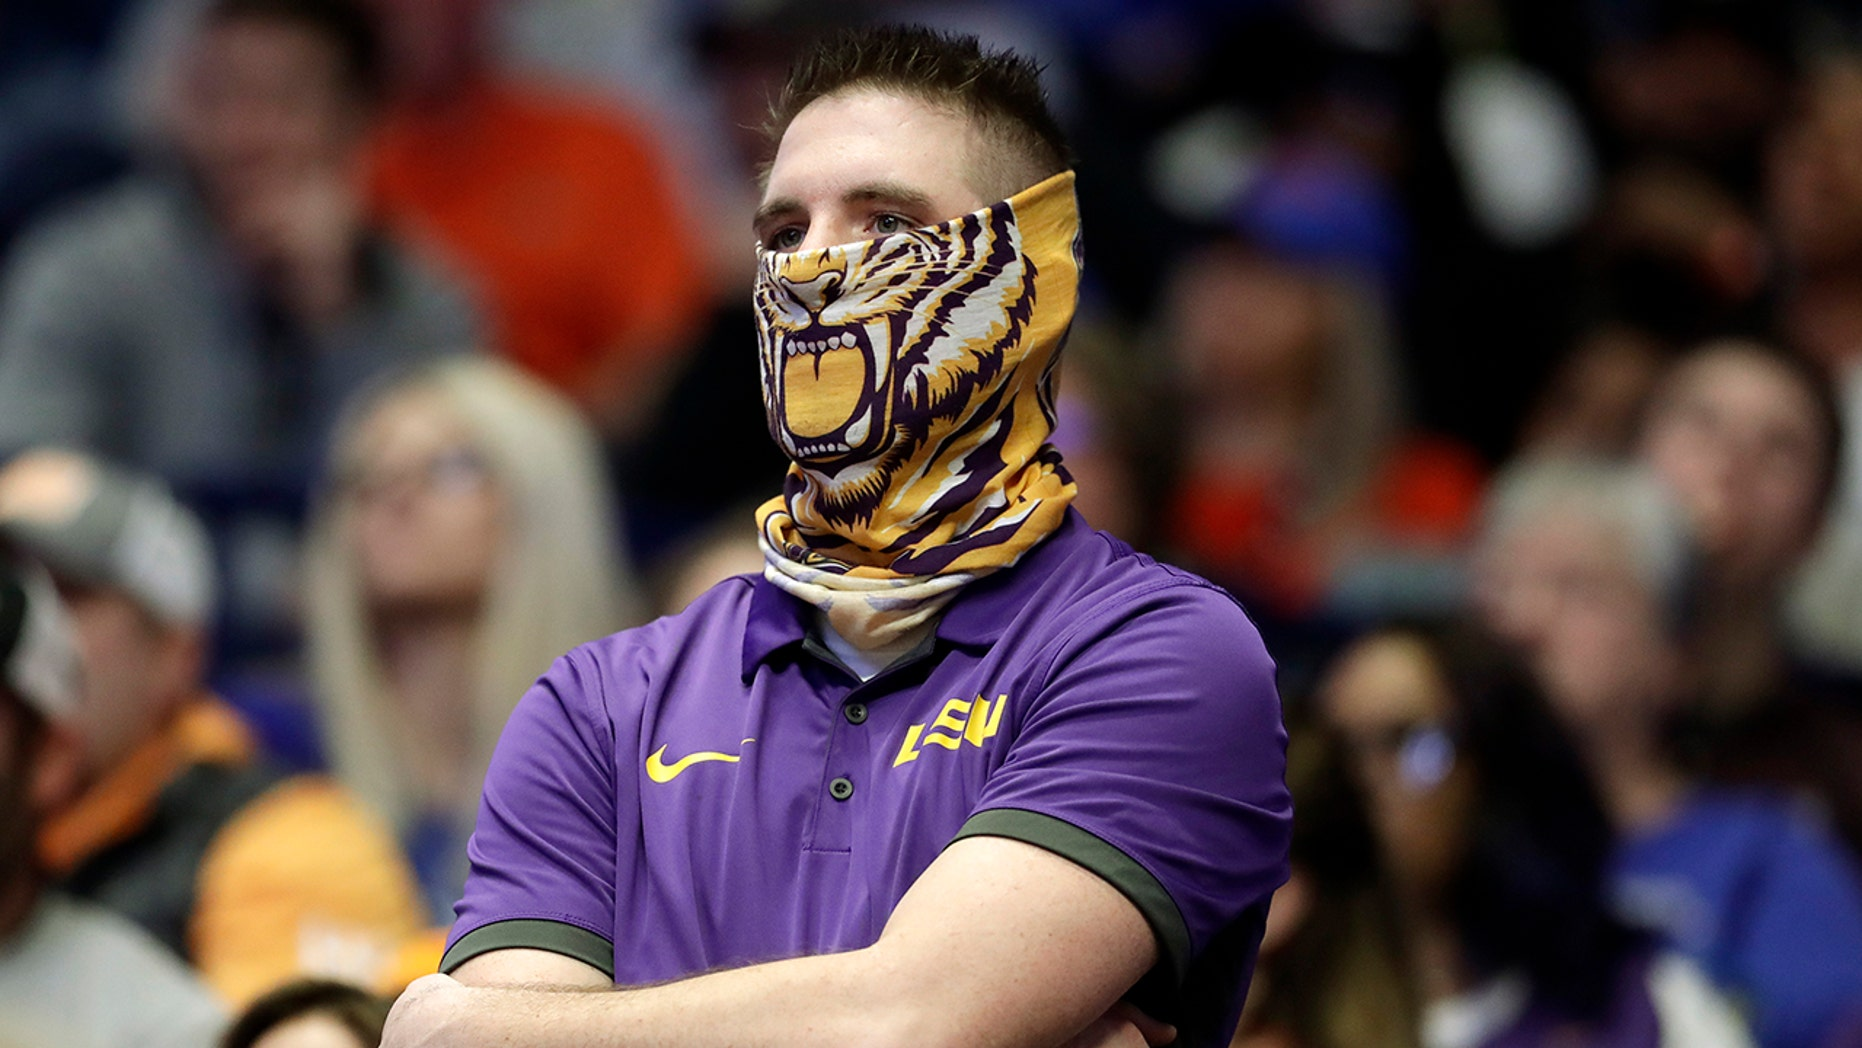 An LSU fan watches during the final minutes of LSU's loss to Florida in an NCAA college basketball game at the Southeastern Conference tournament Friday, March 15, 2019, in Nashville, Tenn. Florida won 76-73. (AP Photo/Mark Humphrey)